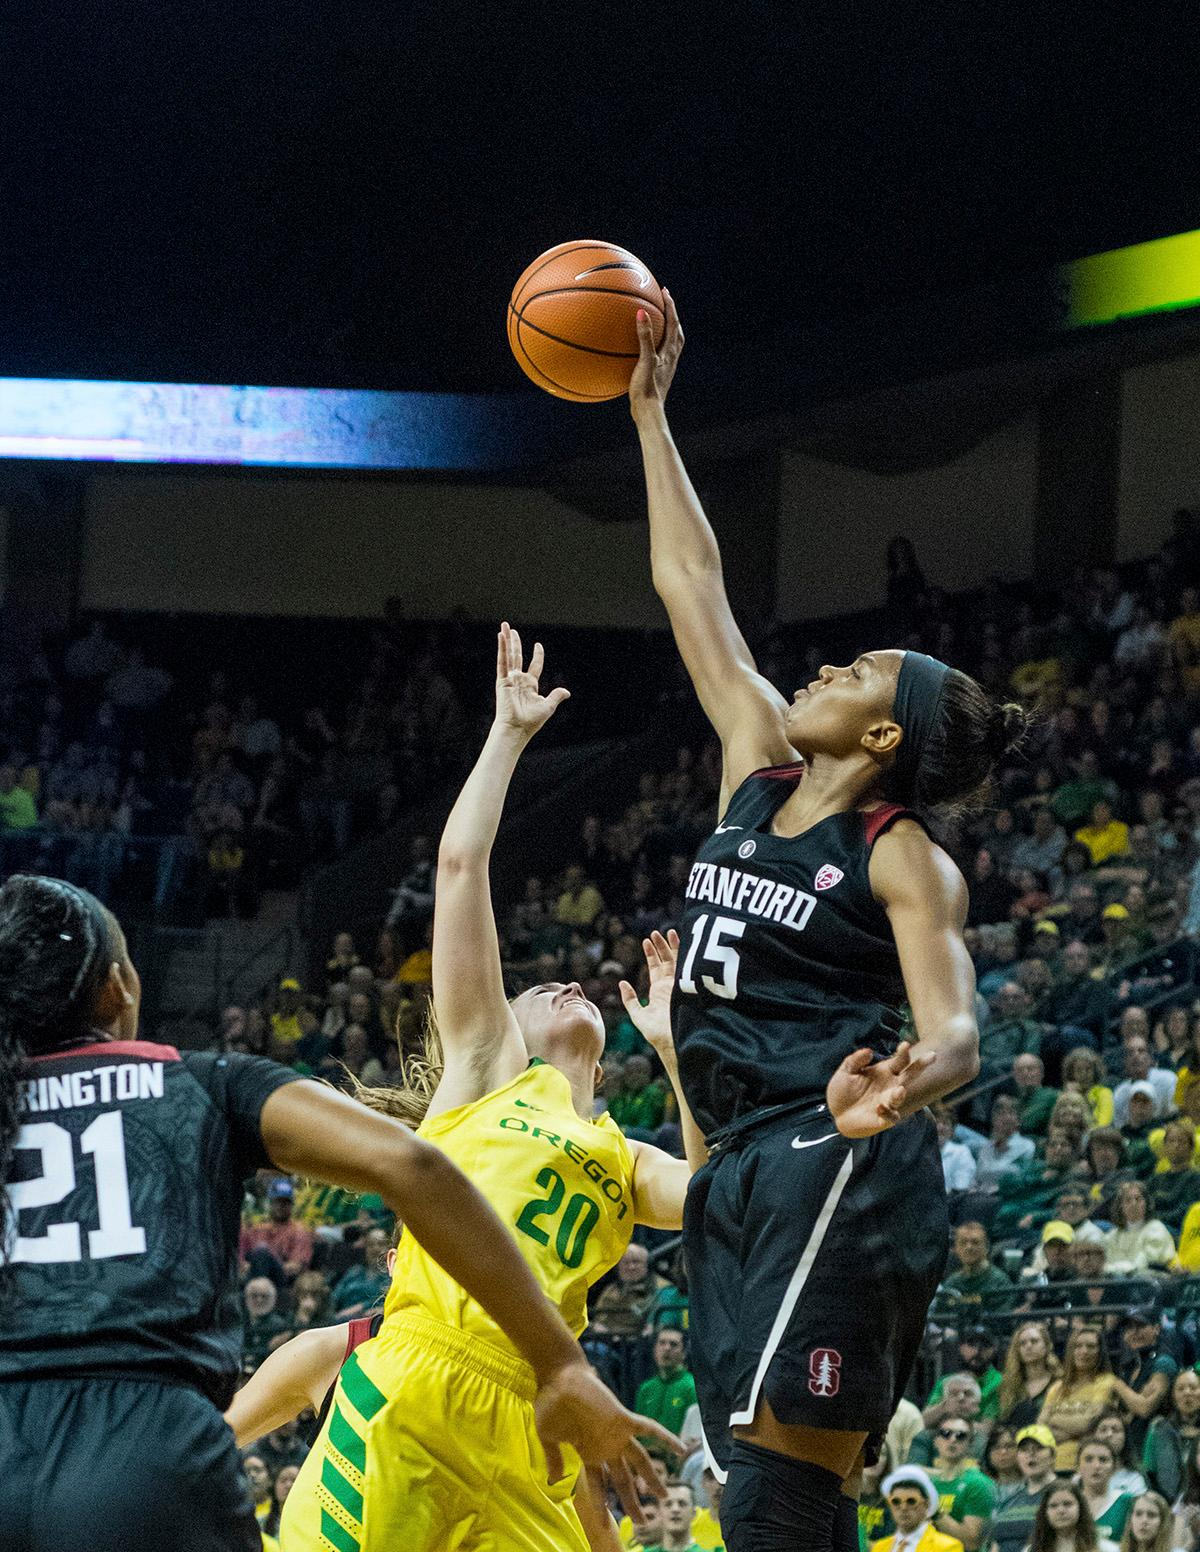 Stanford Cardinal Maya Dodson (#15) blocks the shot of Oregon Ducks Sabrina Ionescu (#20). The Stanford Cardinal defeated the Oregon Ducks 78-65 on Sunday afternoon at Matthew Knight Arena. Stanford is now 10-2 in conference play and with this loss the Ducks drop to 10-2. Leading the Stanford Cardinal was Brittany McPhee with 33 points, Alanna Smith with 14 points, and Kiana Williams with 14 points. For the Ducks Sabrina Ionescu led with 22 points, Ruthy Hebard added 16 points, and Satou Sabally put in 14 points. Photo by Rhianna Gelhart, Oregon News Lab